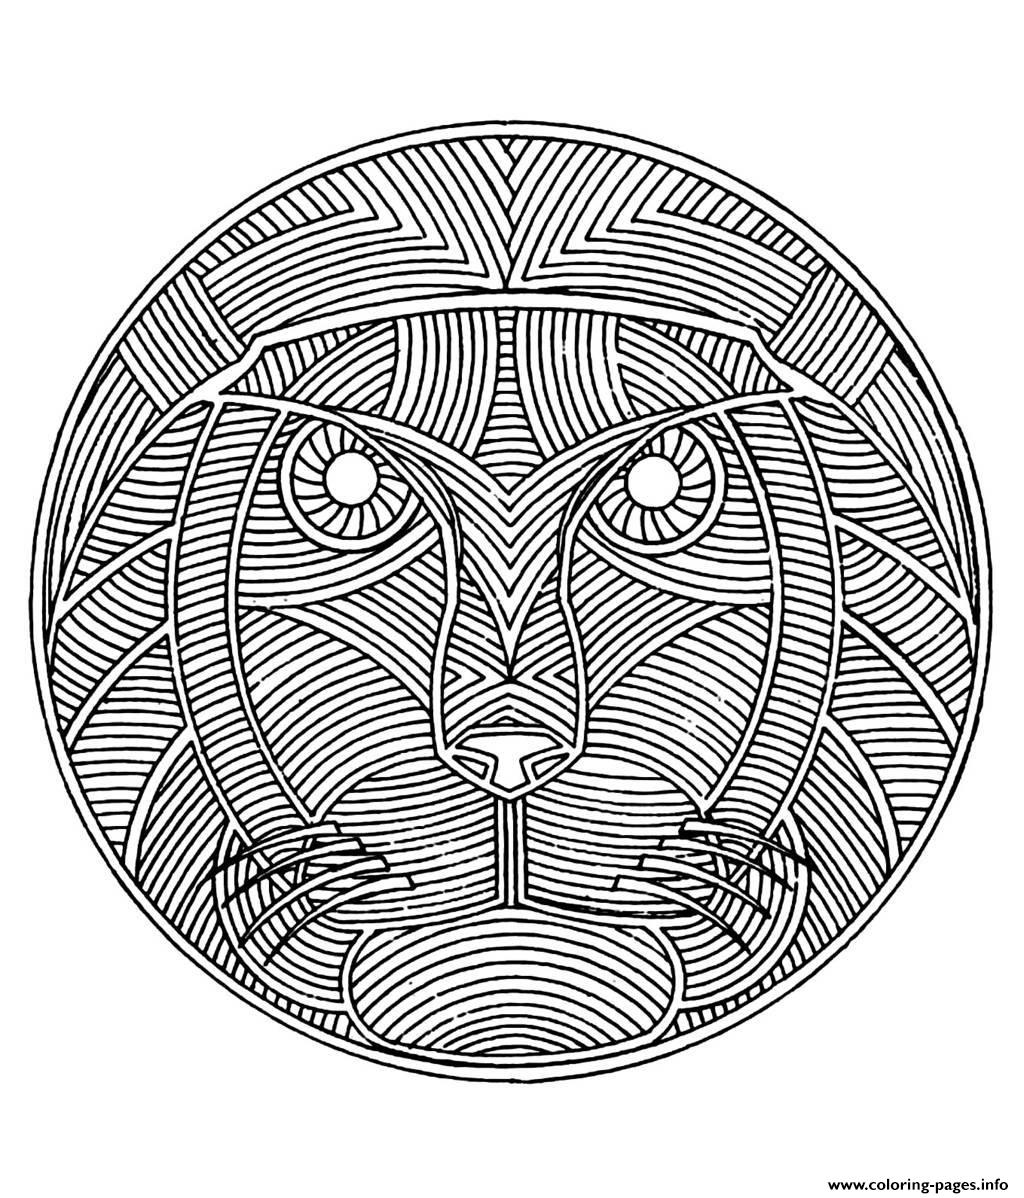 Free mandala coloring pages to print - Free Mandala Coloring Pages To Print 44